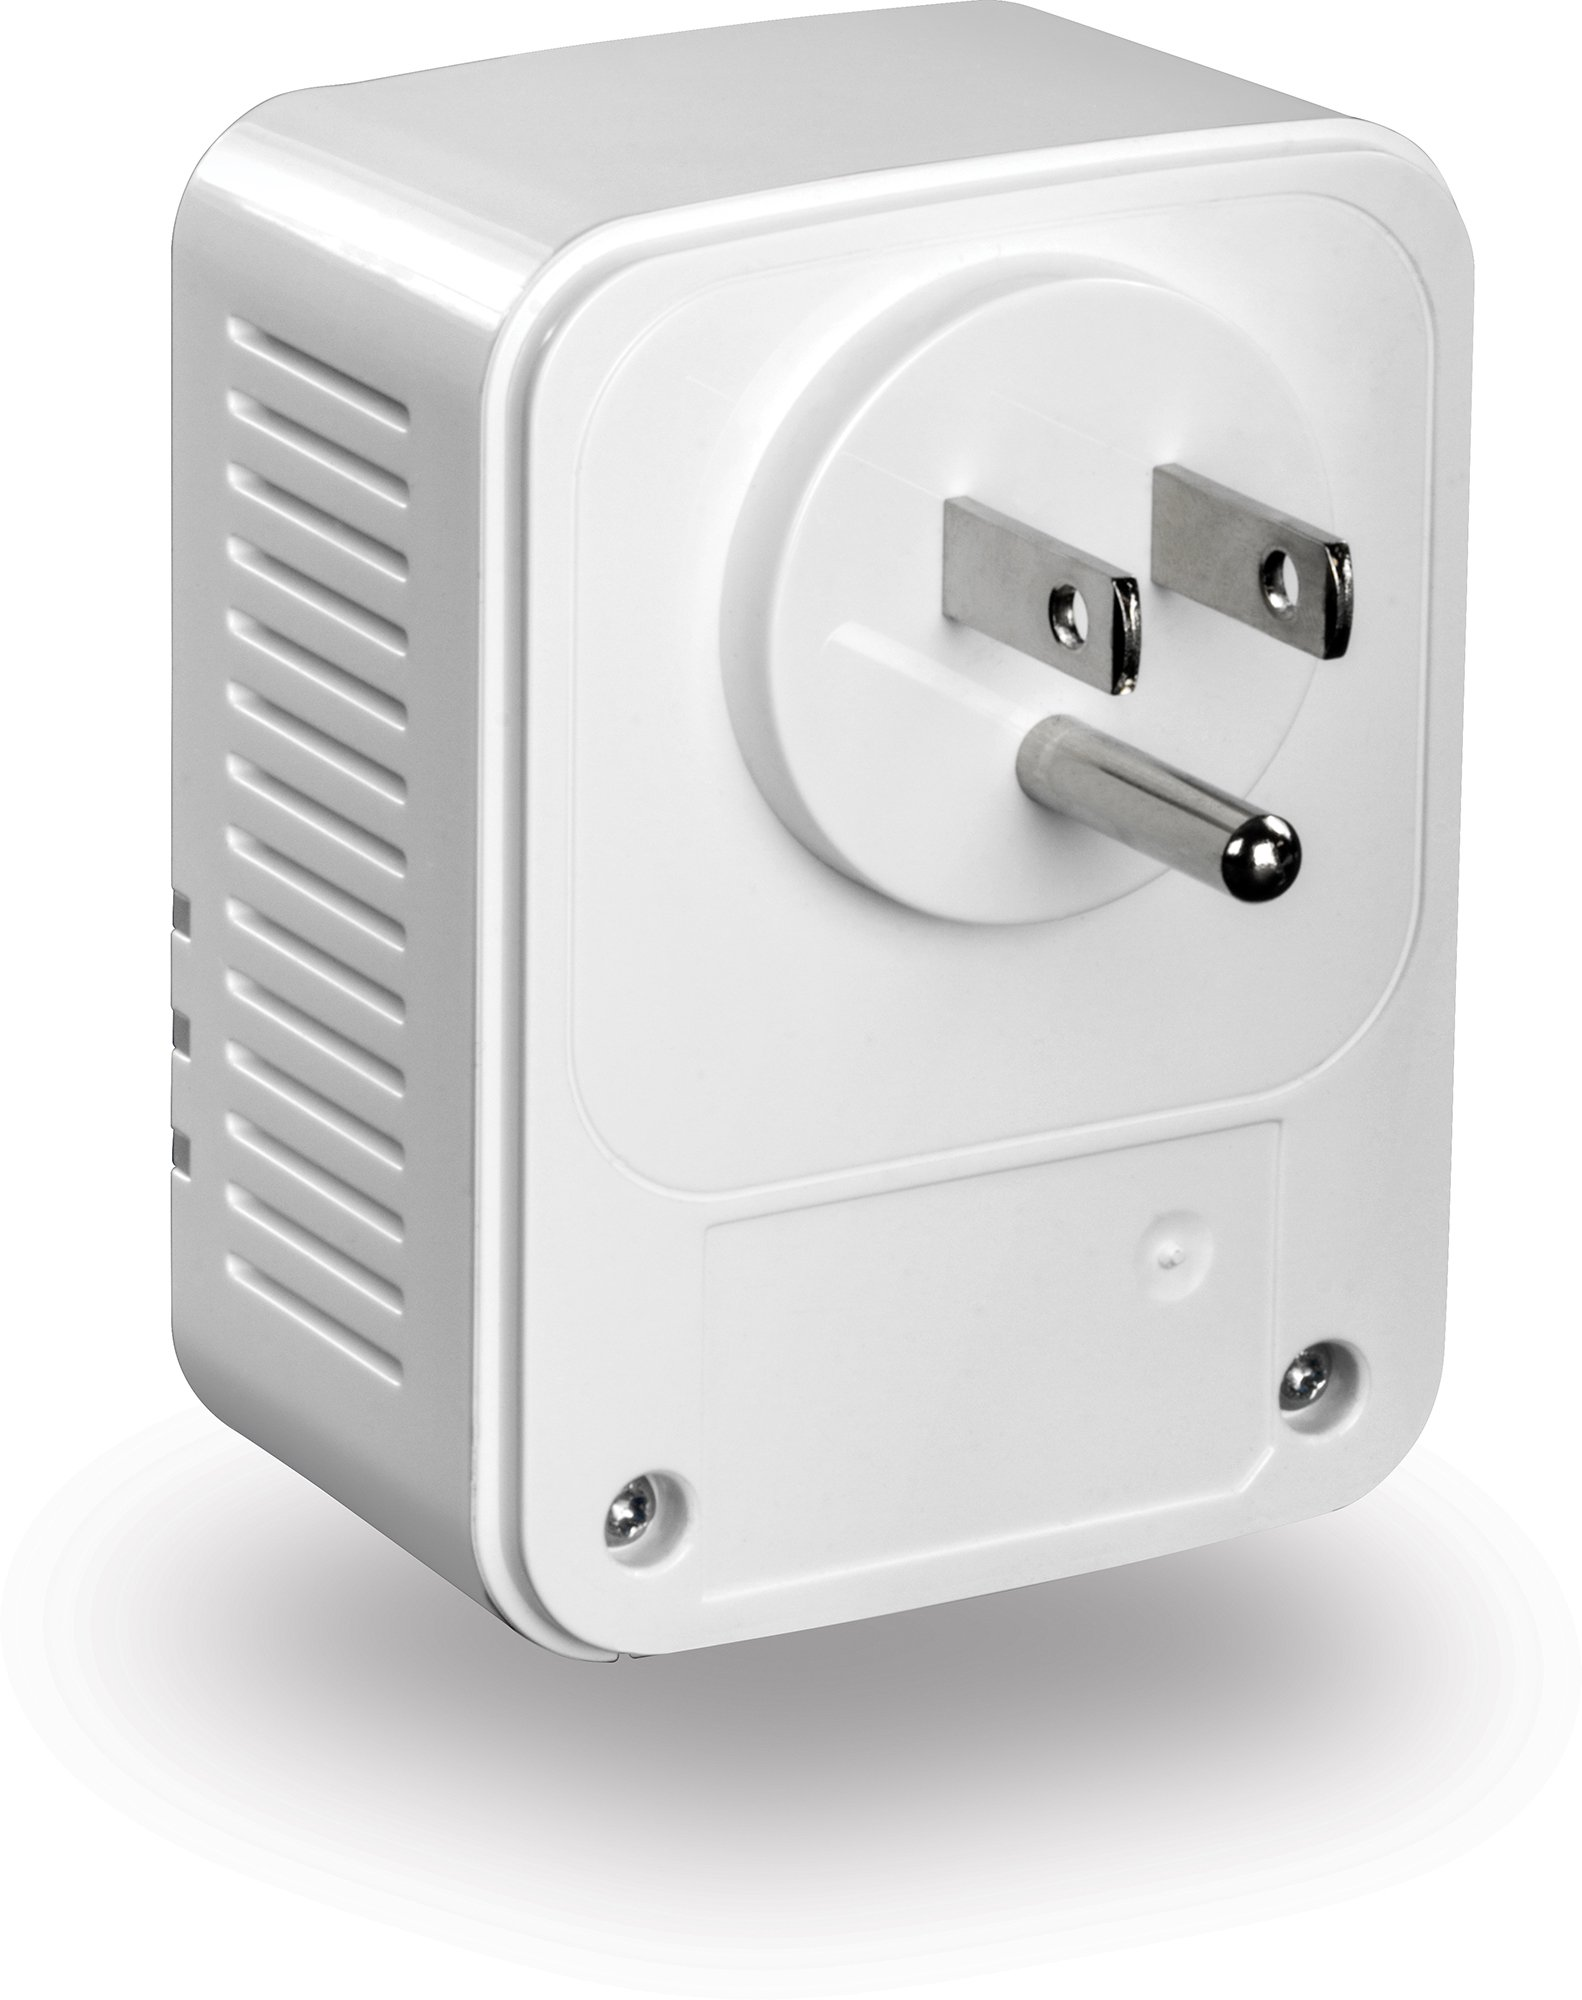 TRENDnet Powerline 1200 AV2 Single Adapter with Gigabit Port, Plug and Play, MIMO, Beamforming, TPL-420E by TRENDnet (Image #6)